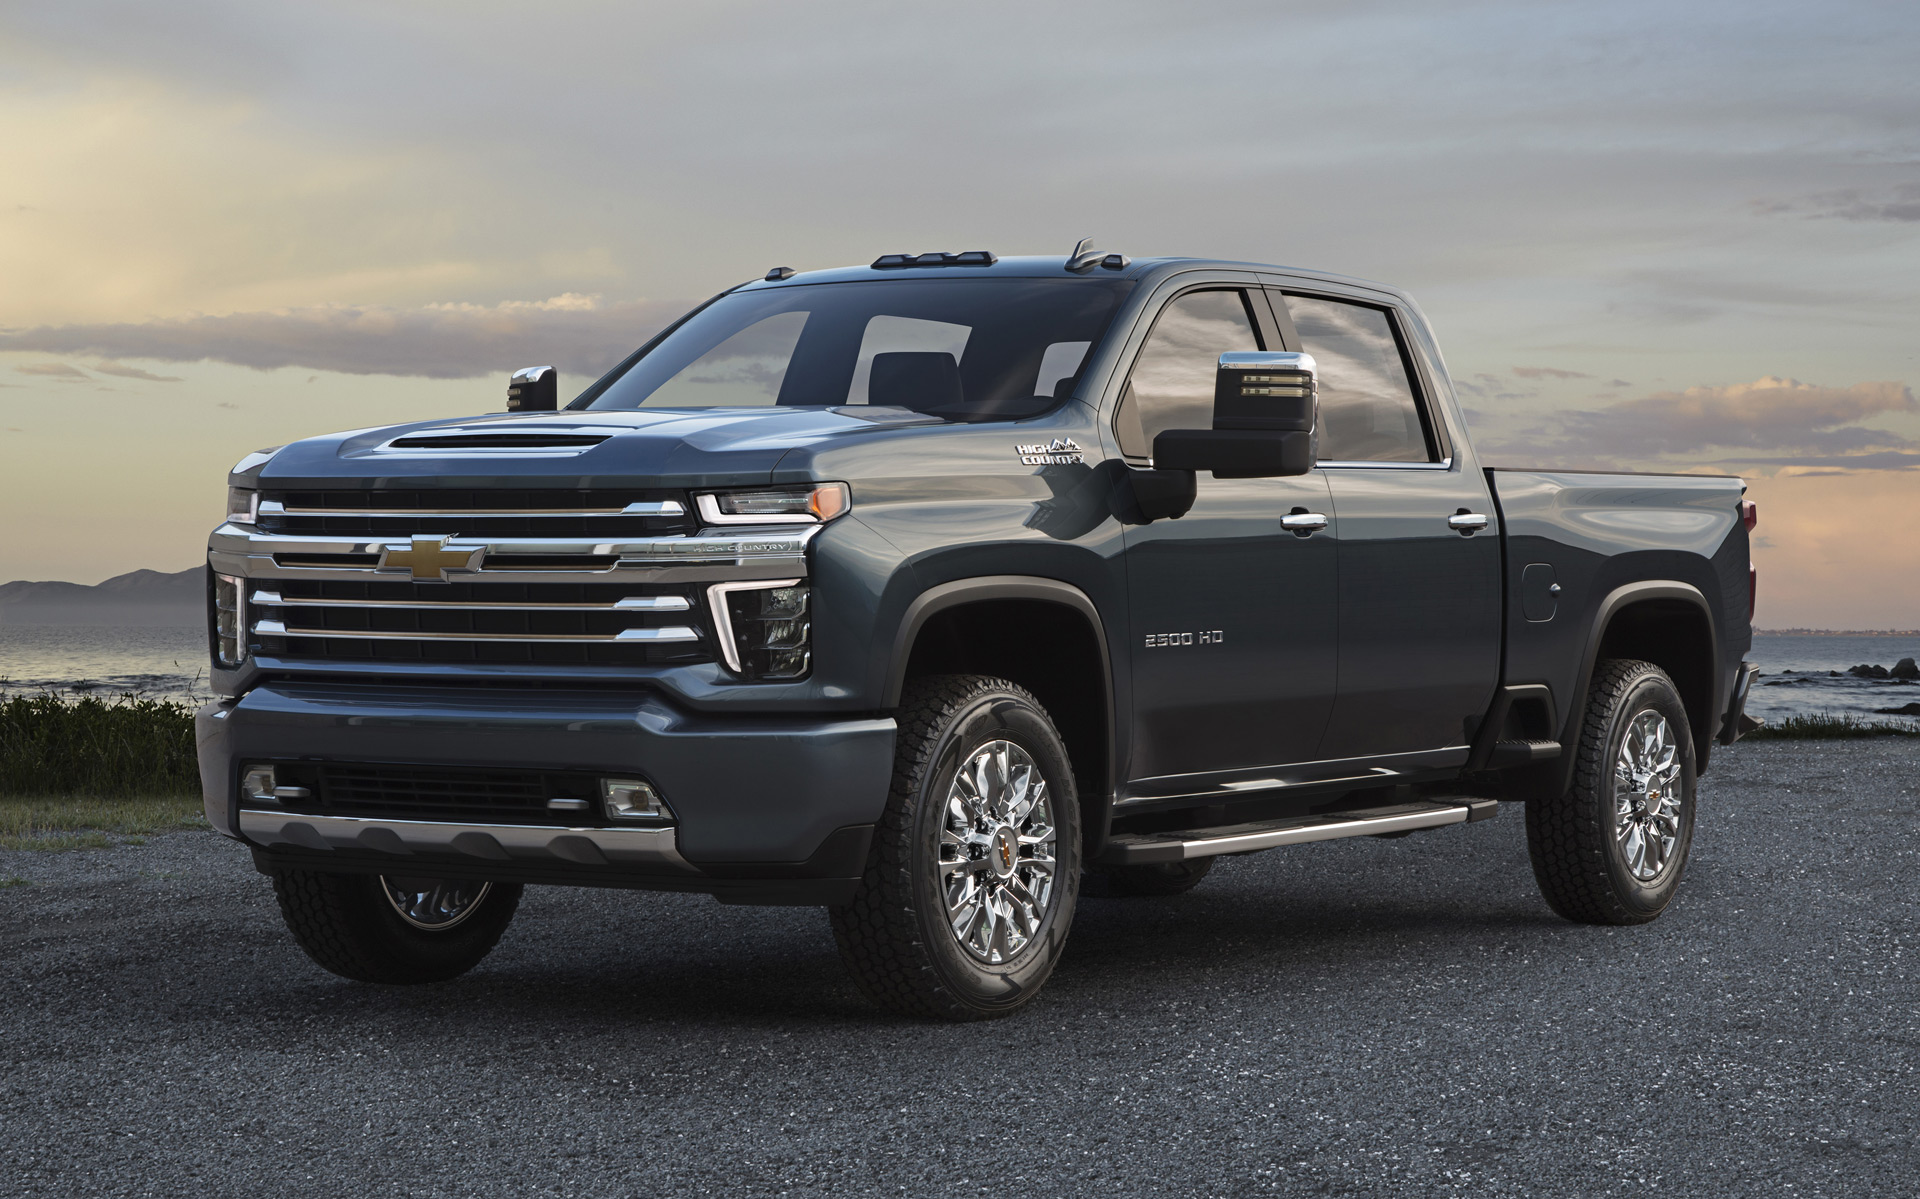 2020 Chevy Silverado 2500HD High Country: More bling, less butch